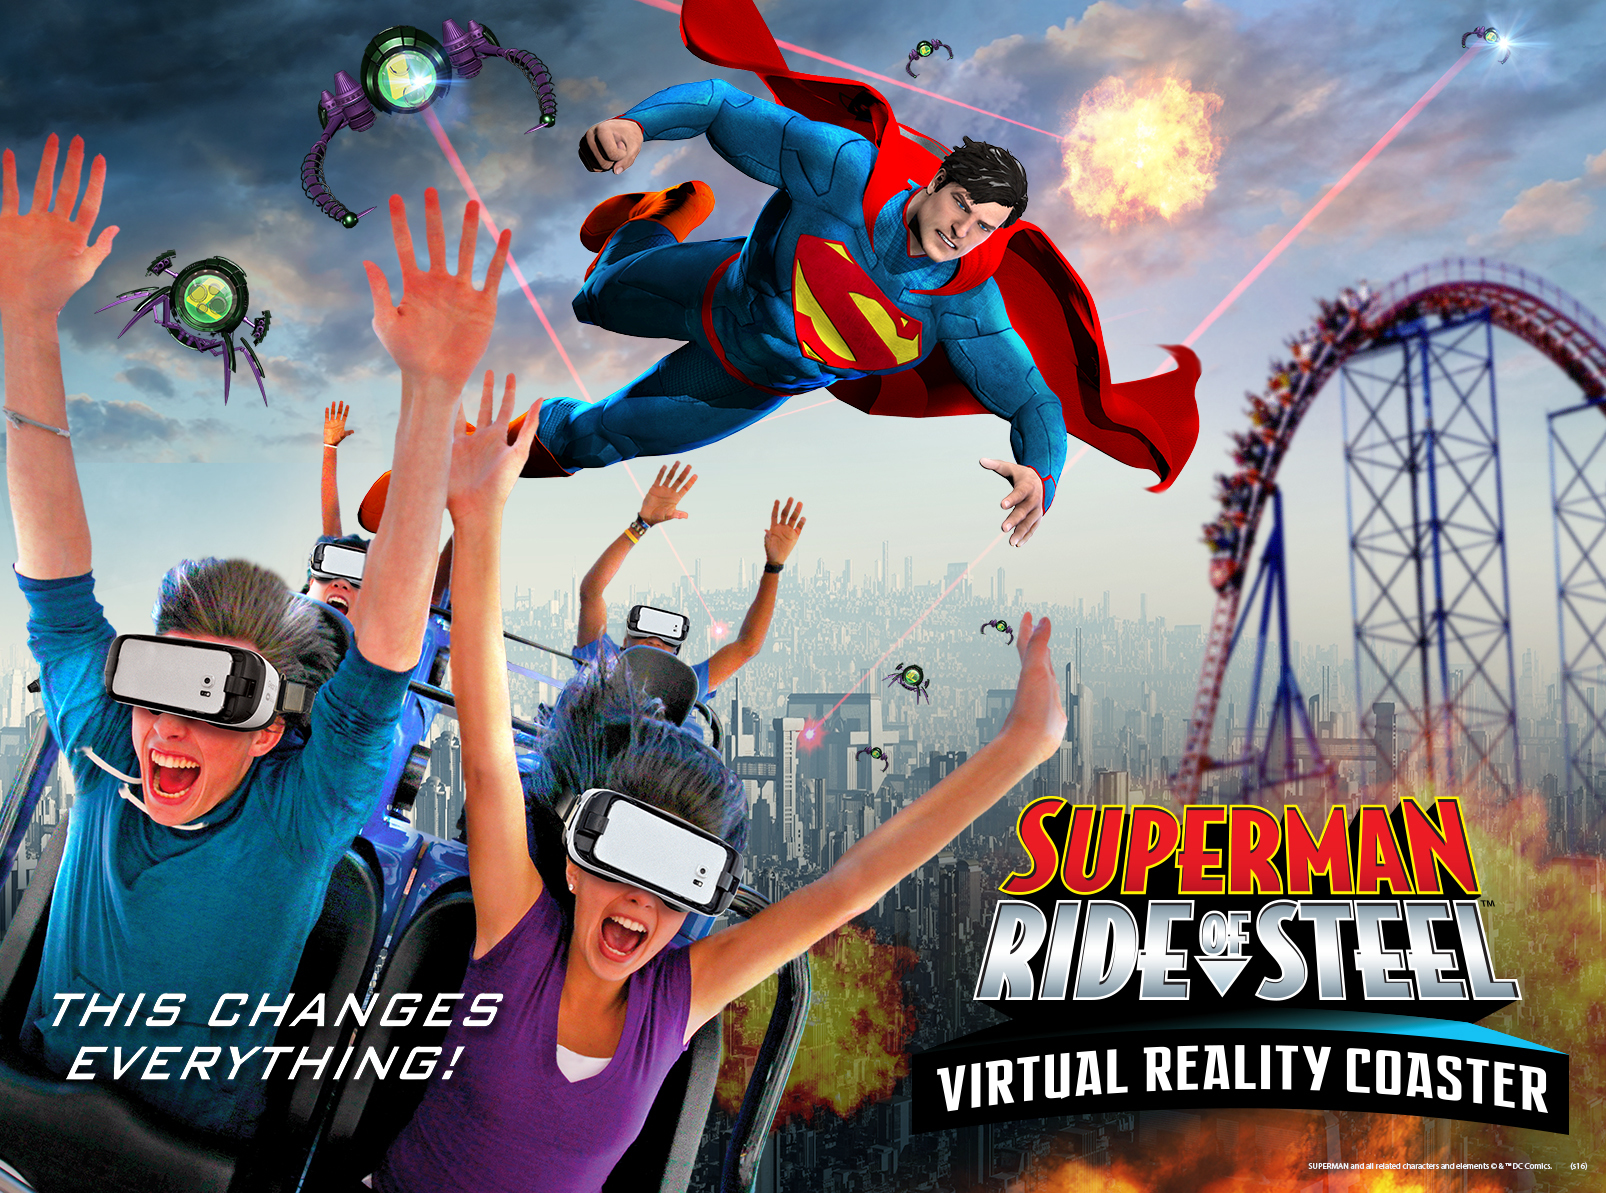 Virtual reality roller coaster coming to Six Flags America